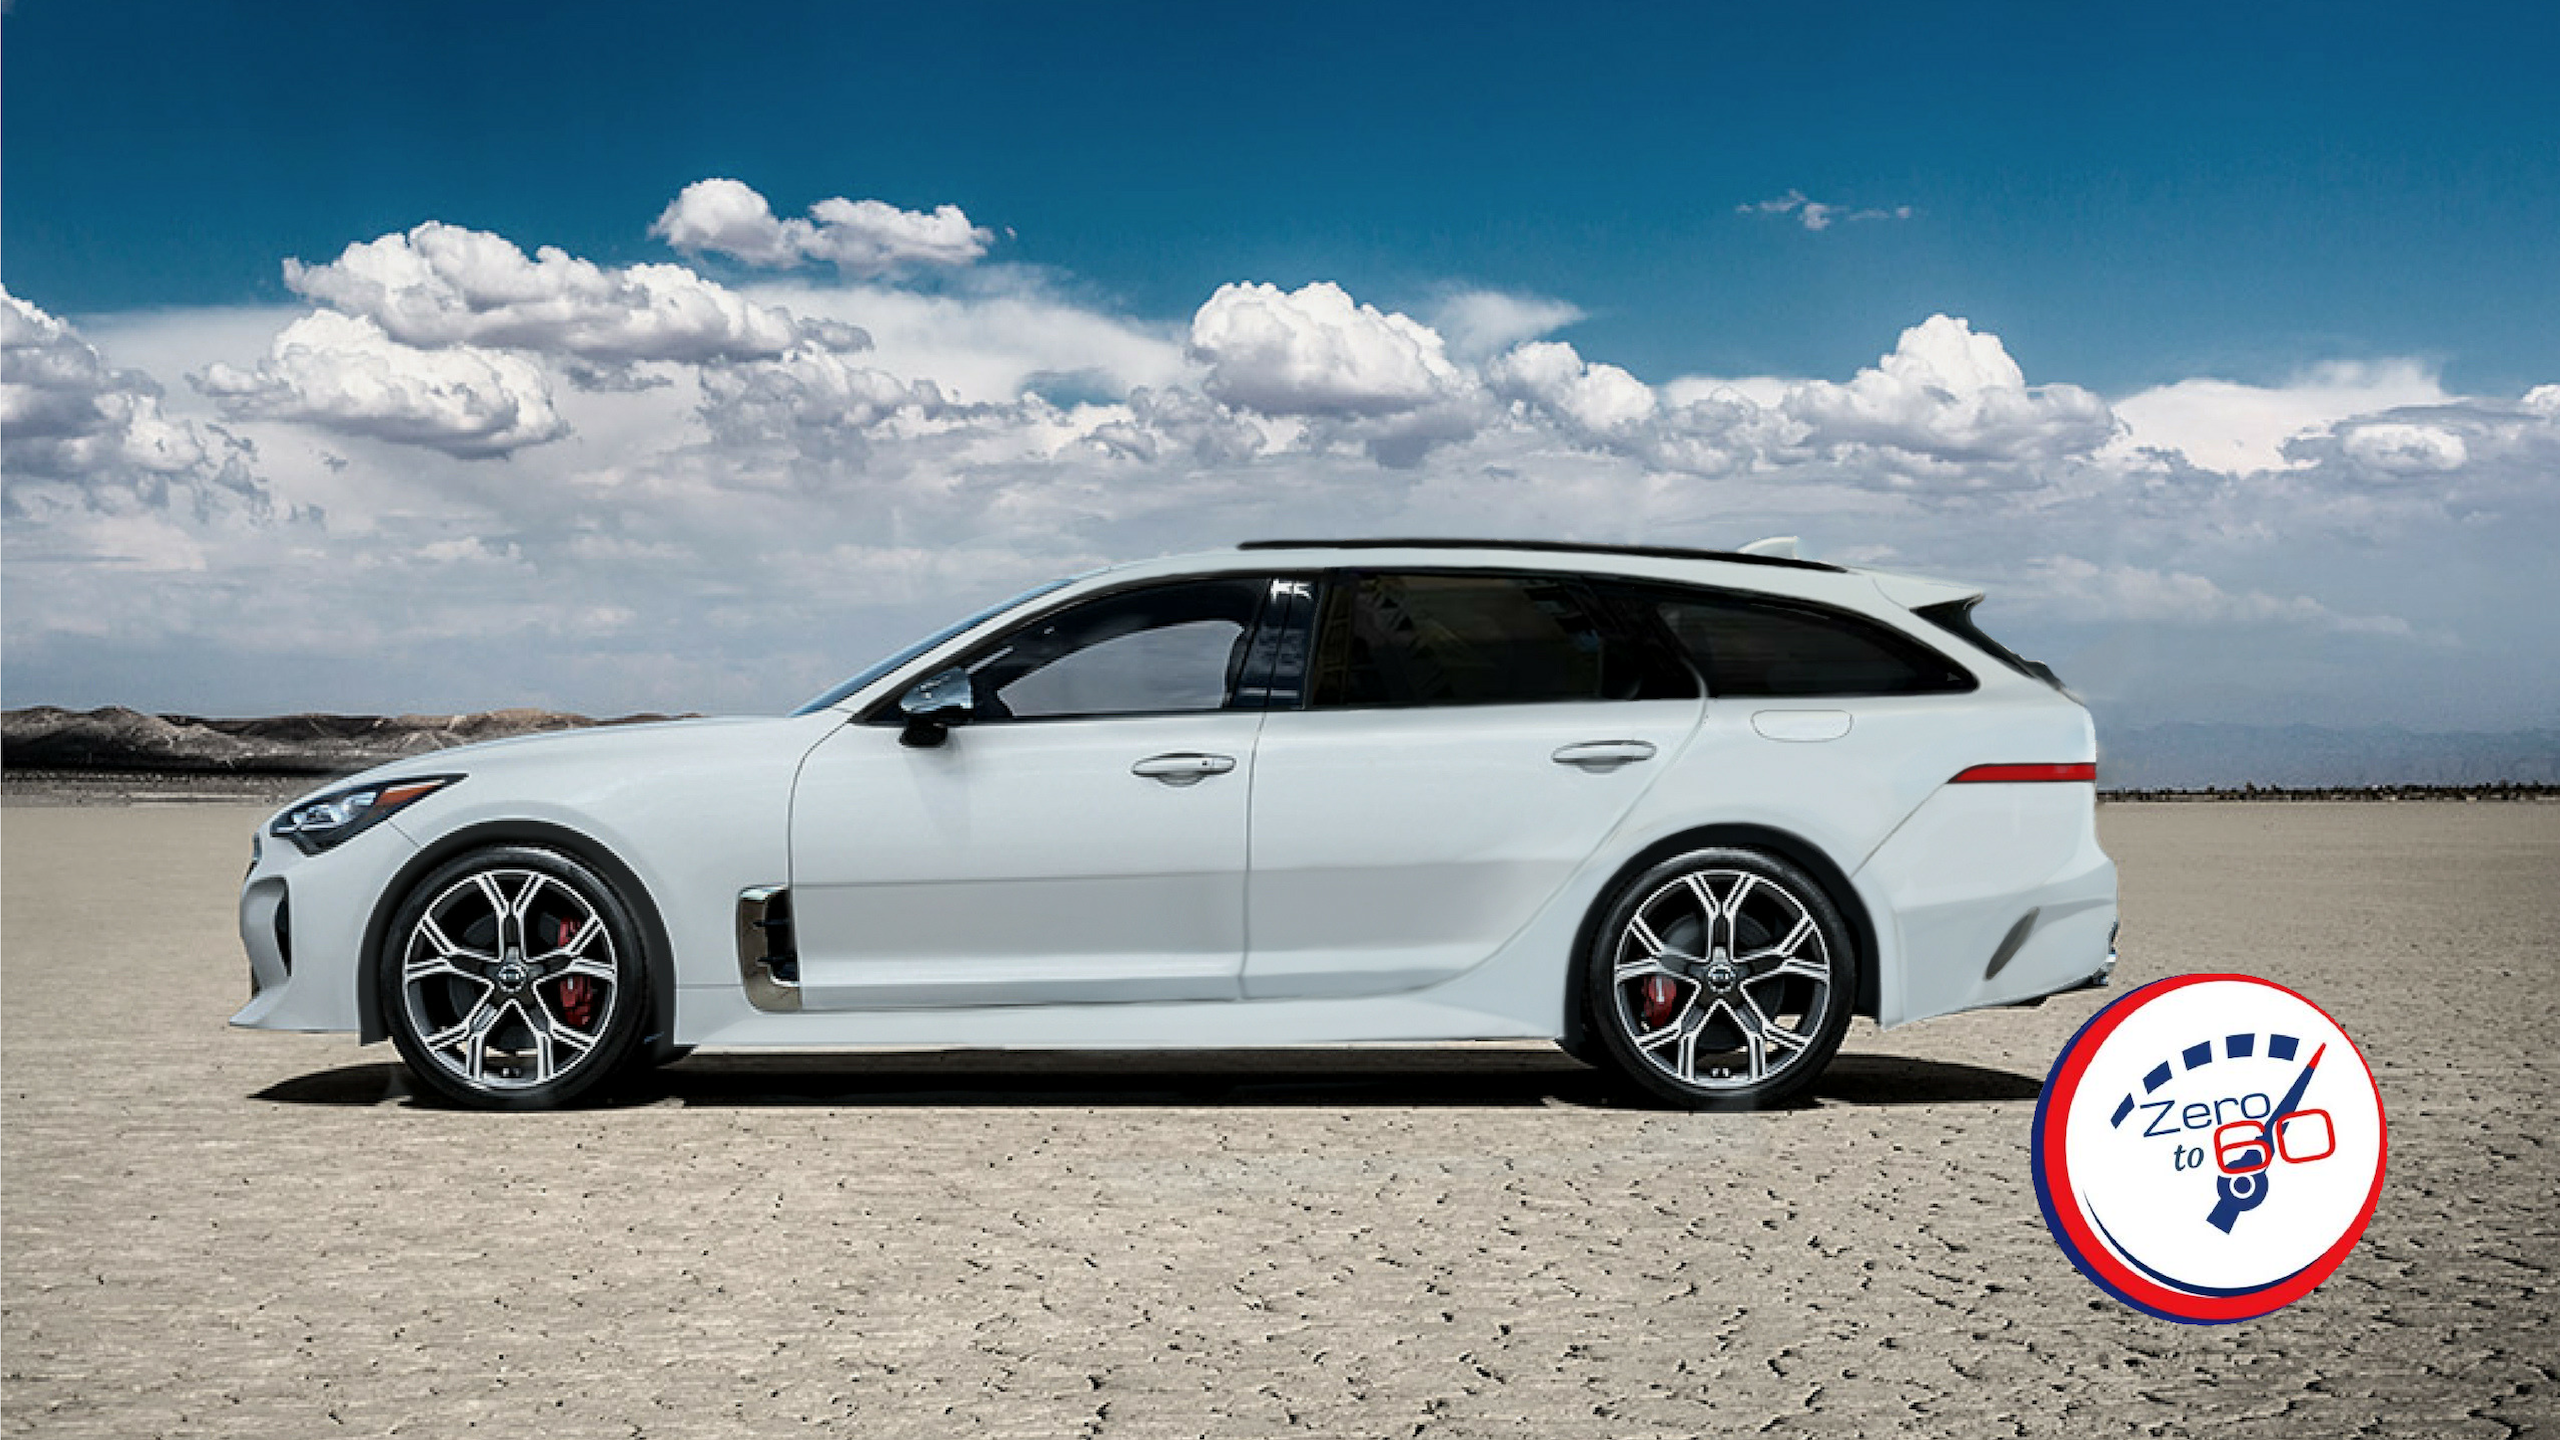 2020 kia stinger gt wagon  isn't she a beaut  leith